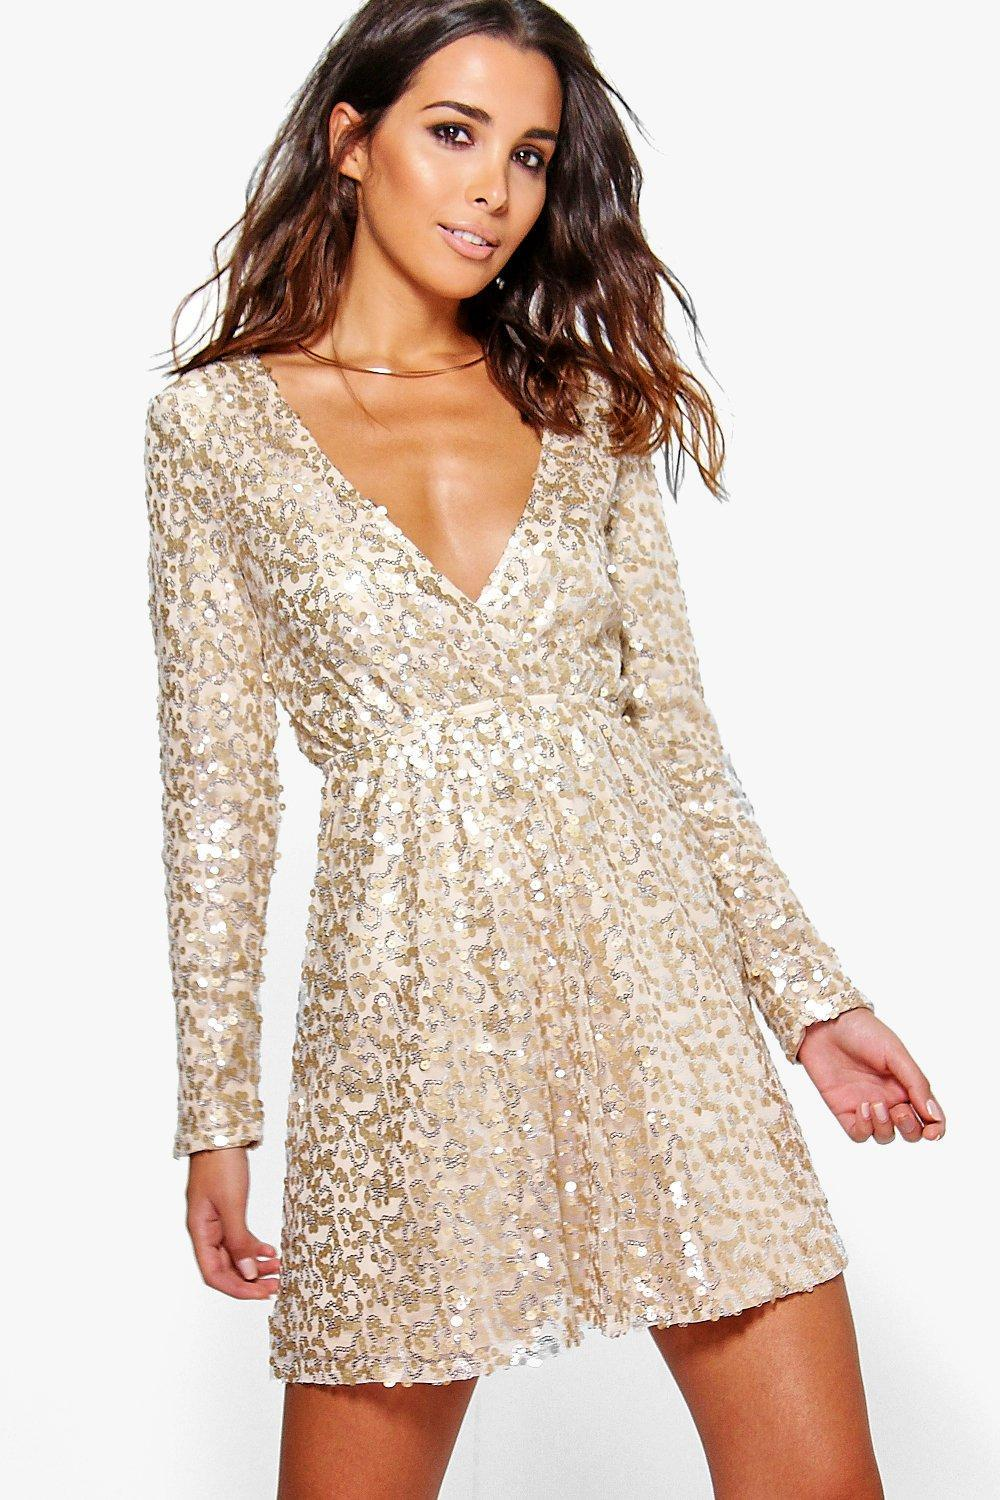 Boohoo Boutique Sara Sequin Wrap Skater Dress In Metallic